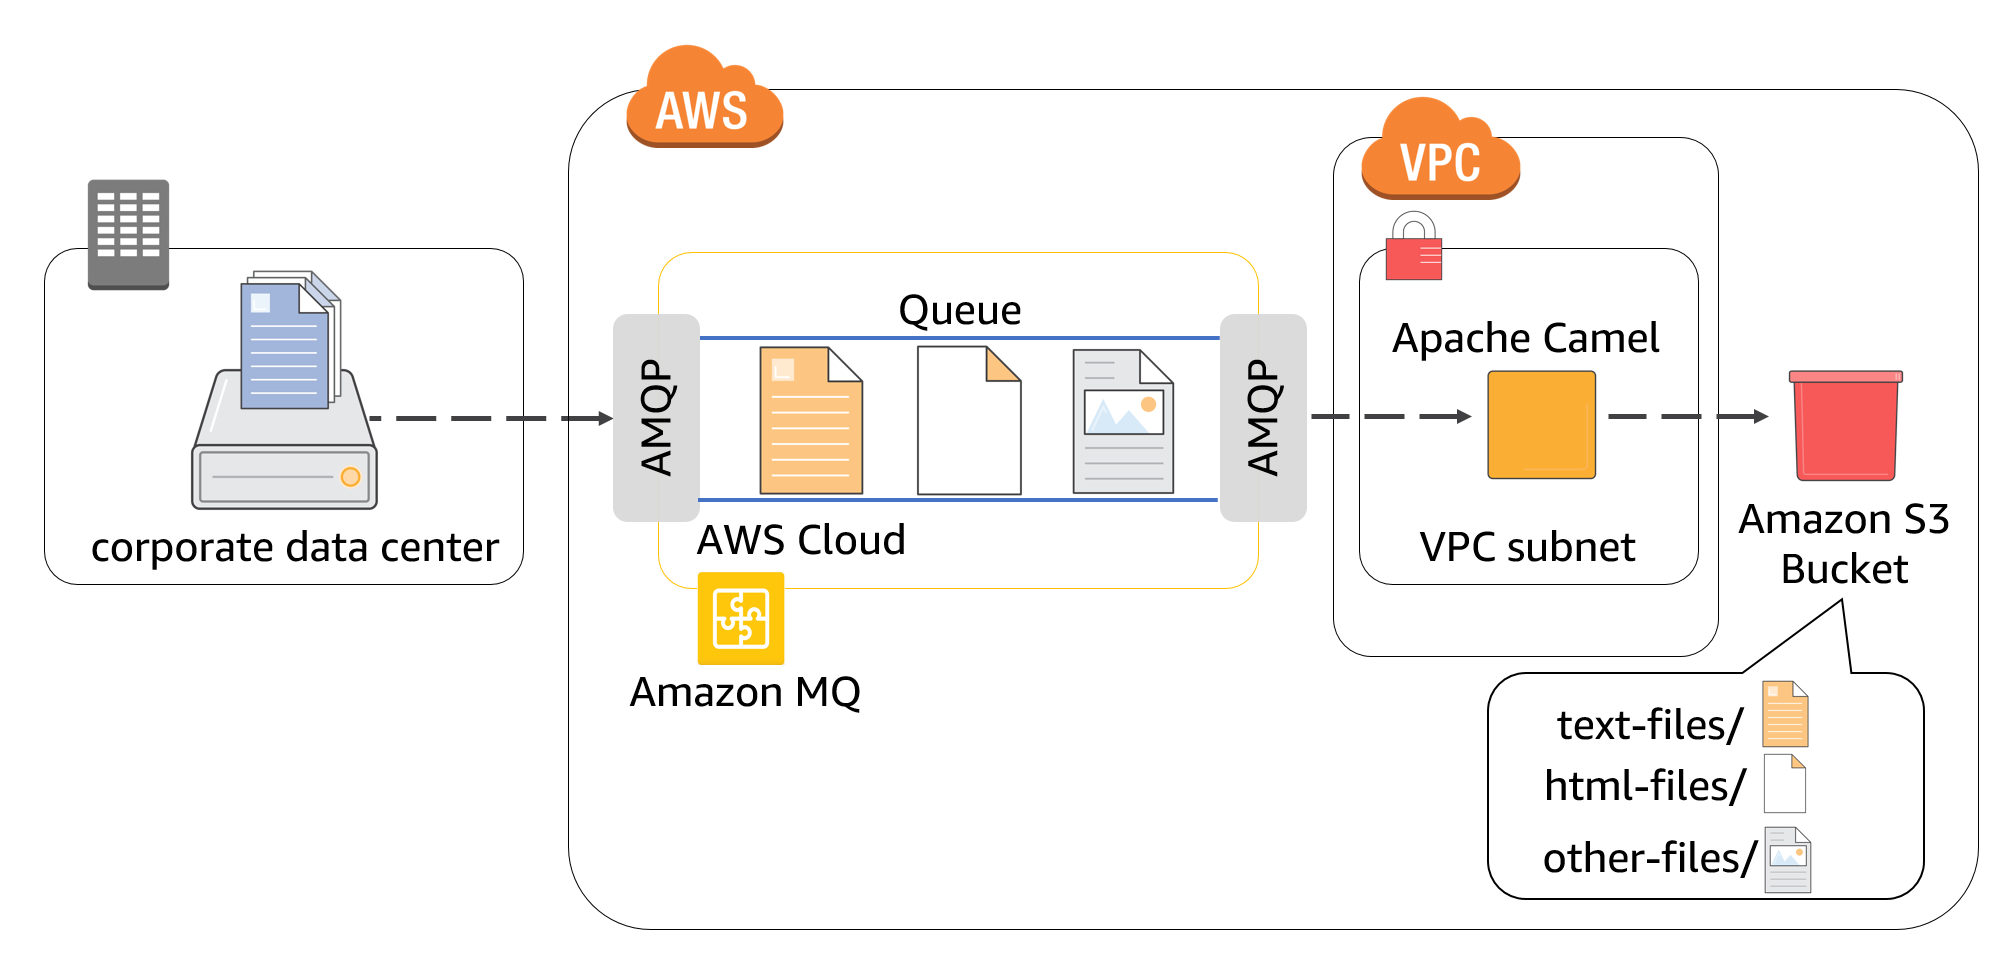 Integrating Amazon MQ with other AWS services via Apache